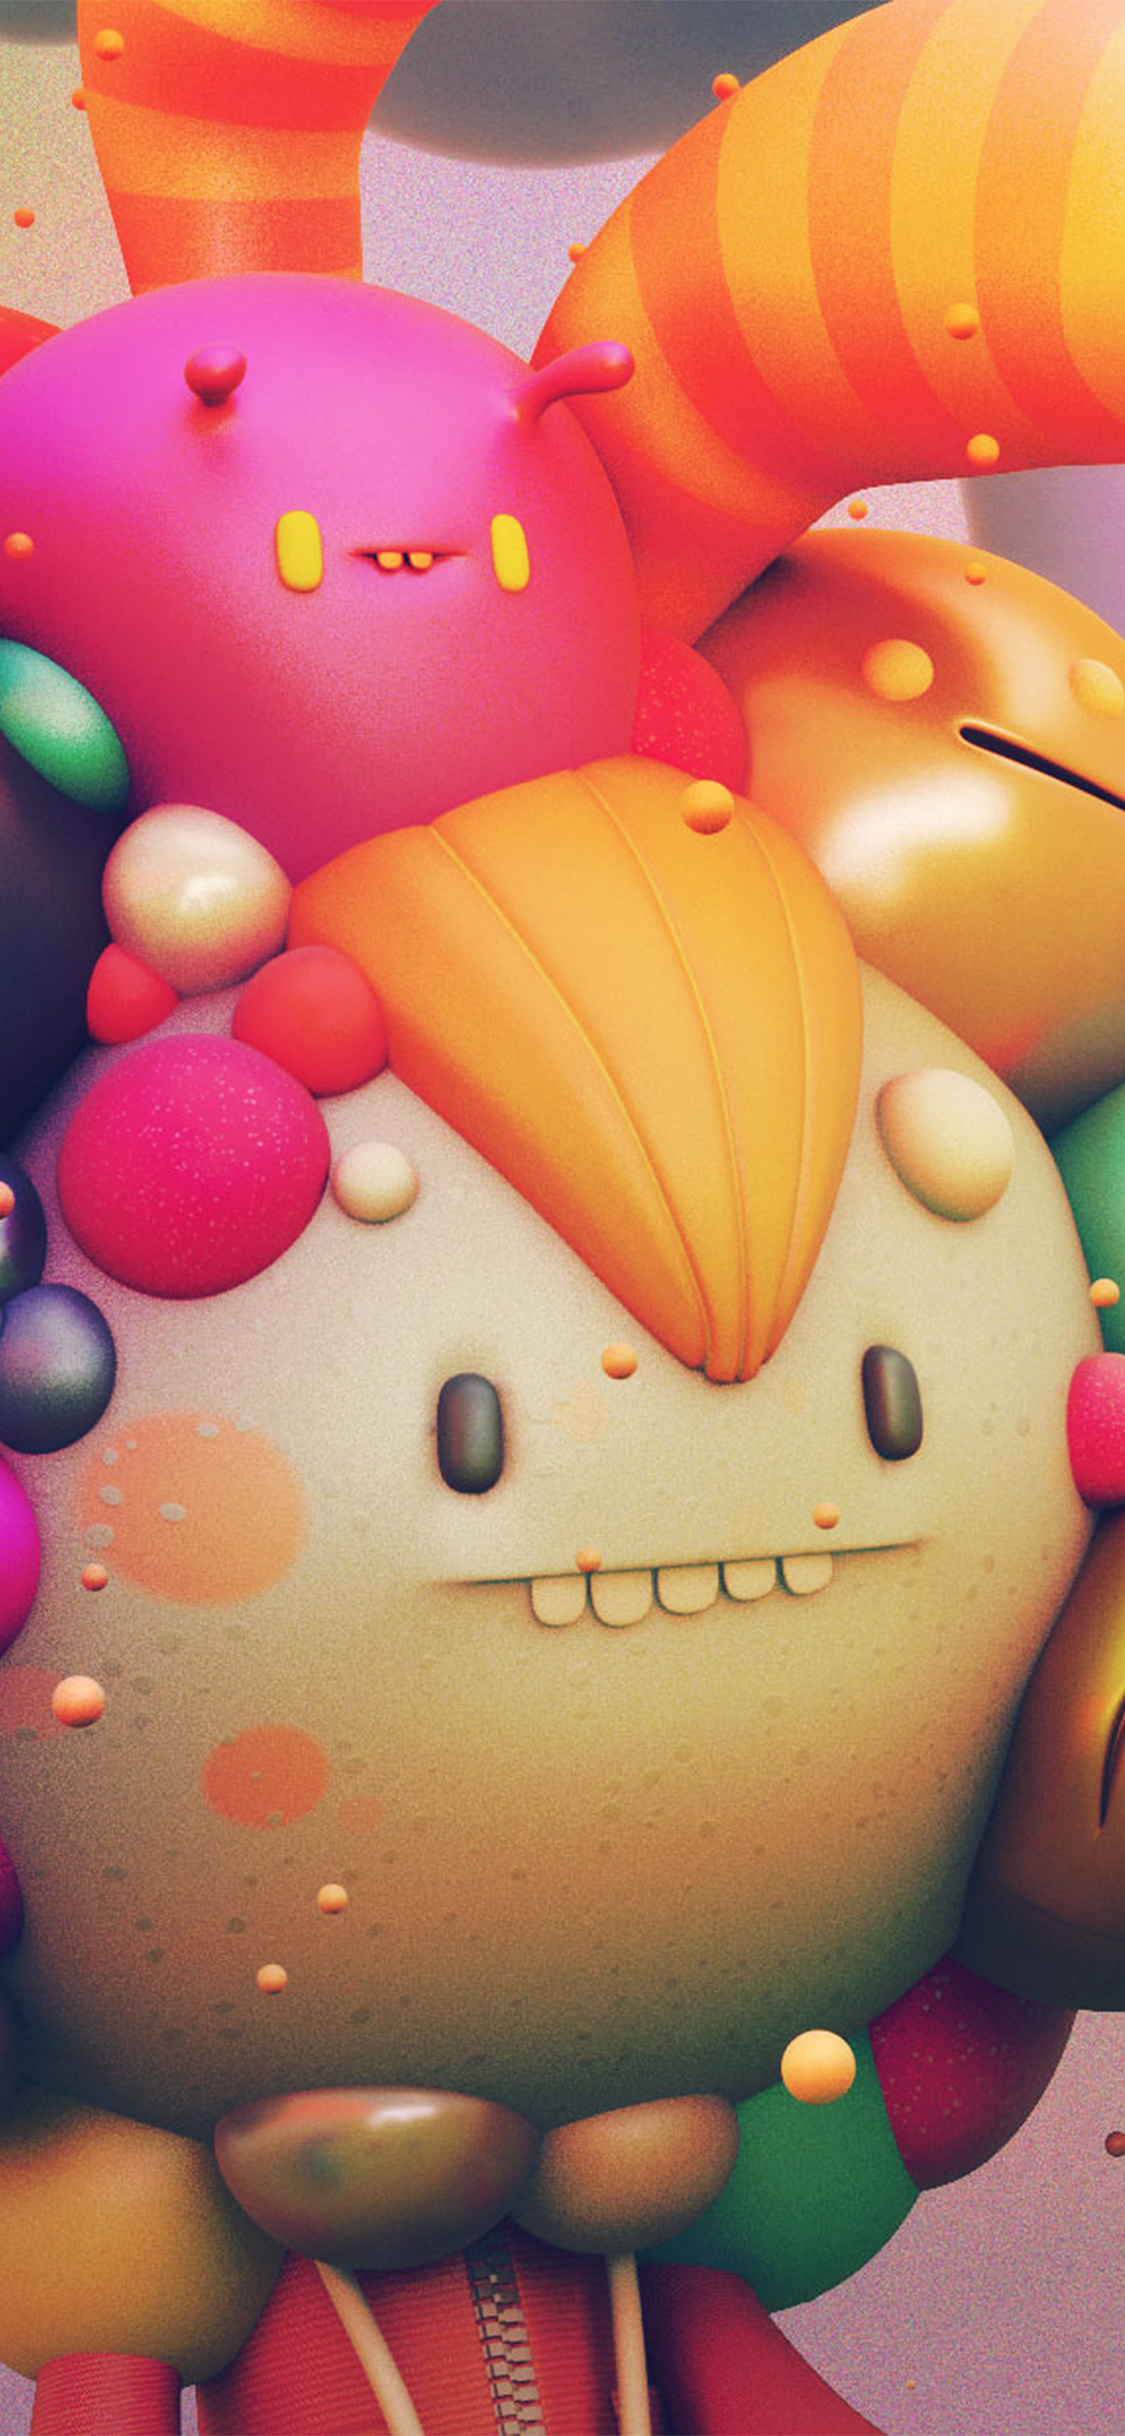 iPhoneXpapers.com-Apple-iPhone-wallpaper-ay16-cute-monster-character-3d-illustration-art